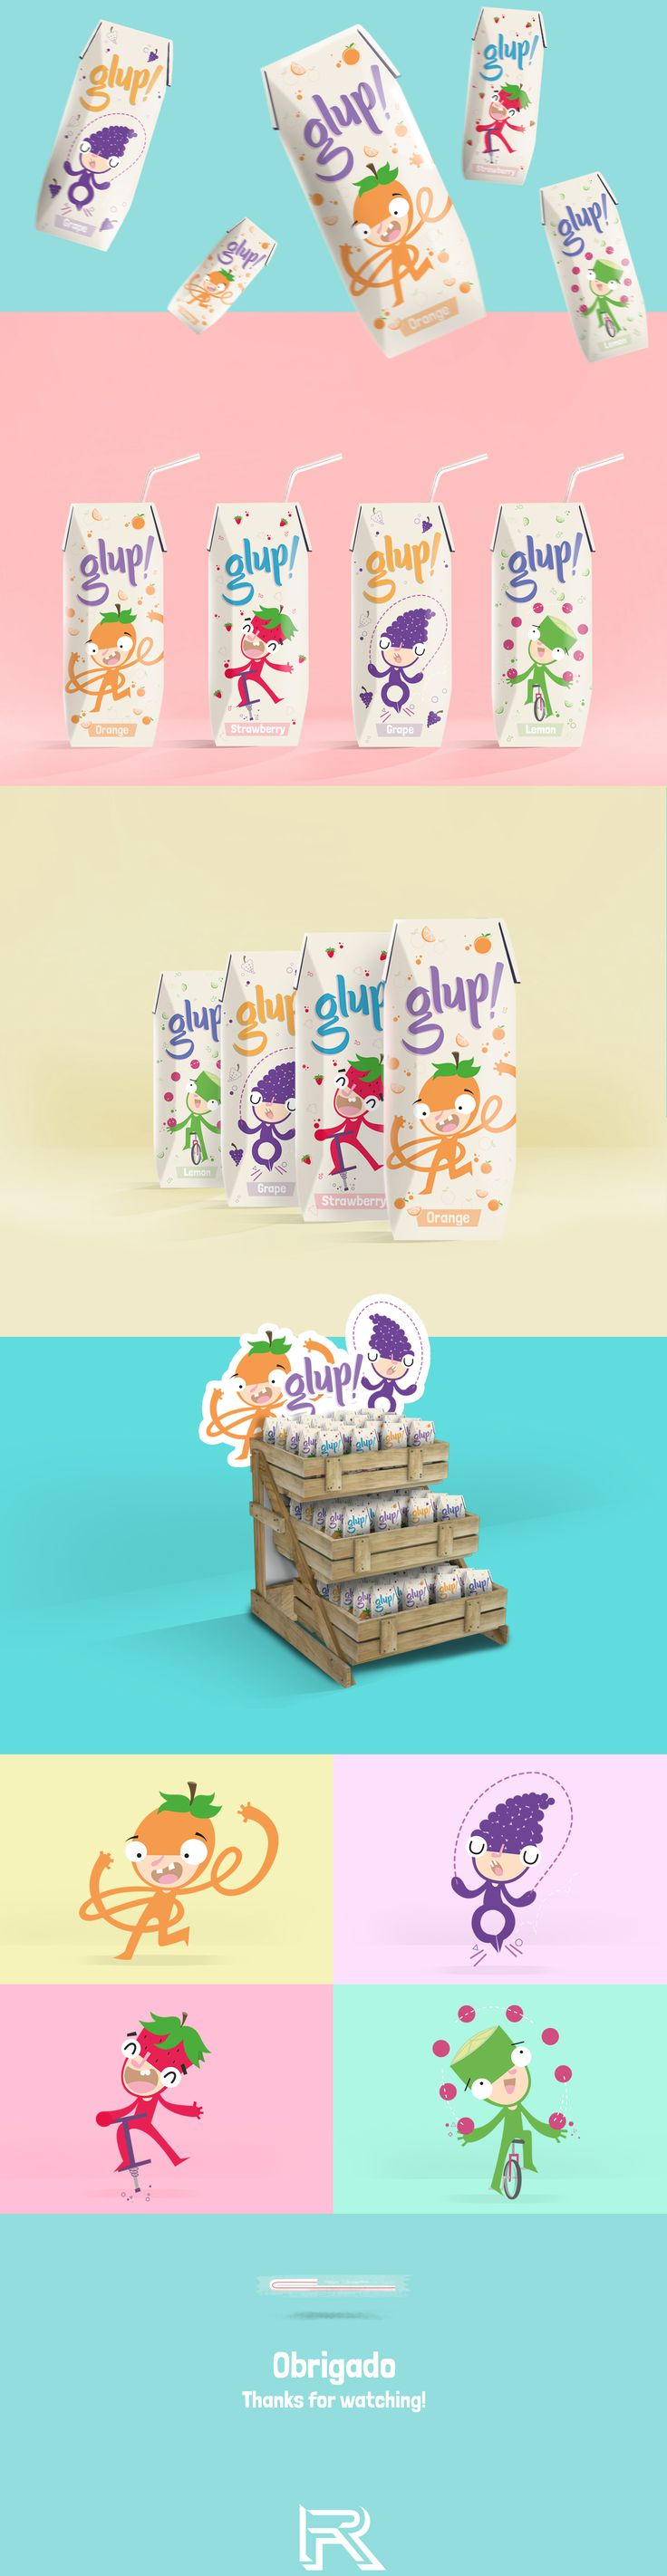 Package | Glup! on Behance